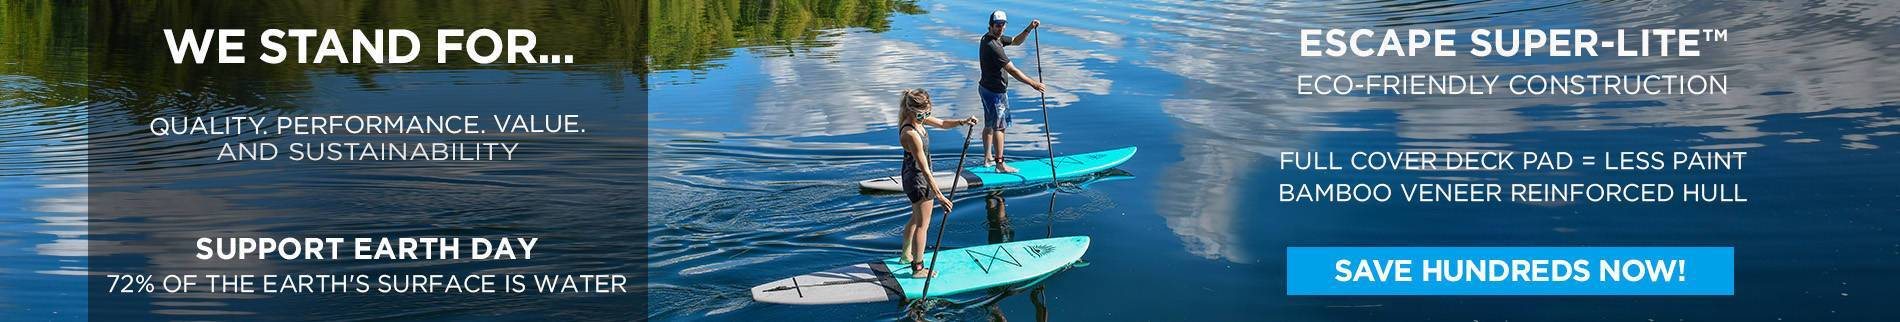 Paddle Boards with Full Wrap Deck Pad